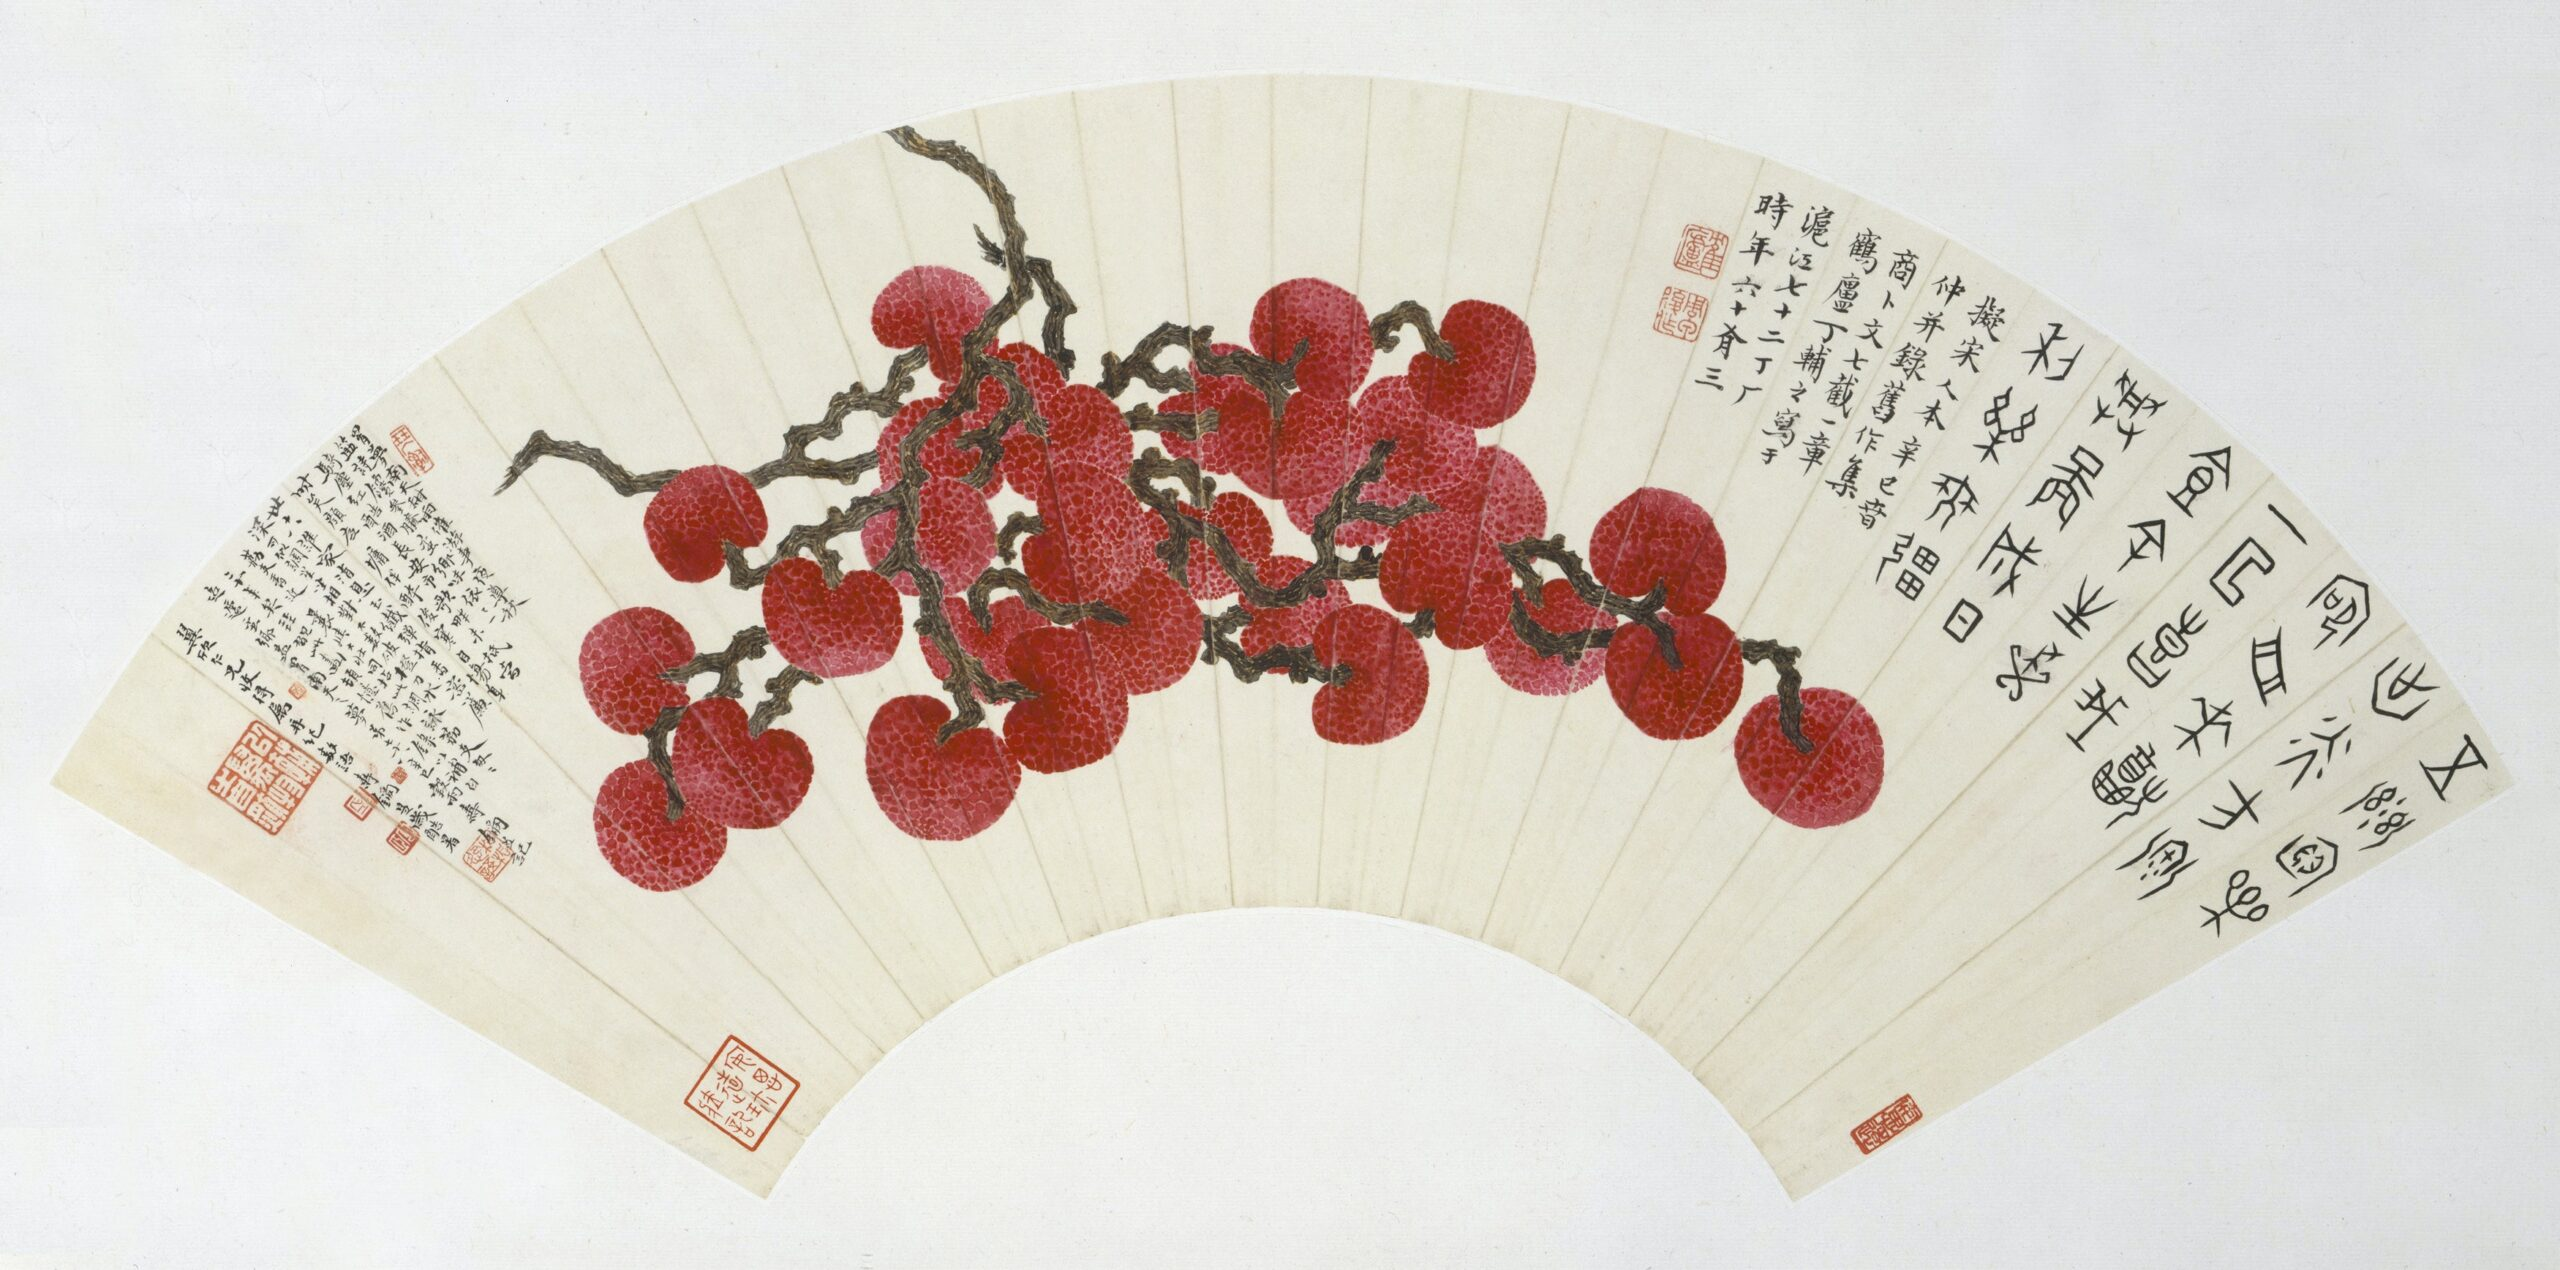 Lychees (1941) Chinese painting in high resolution by Ding Fuzhi. Original from The MET. Digitally enhanced by rawpixel.